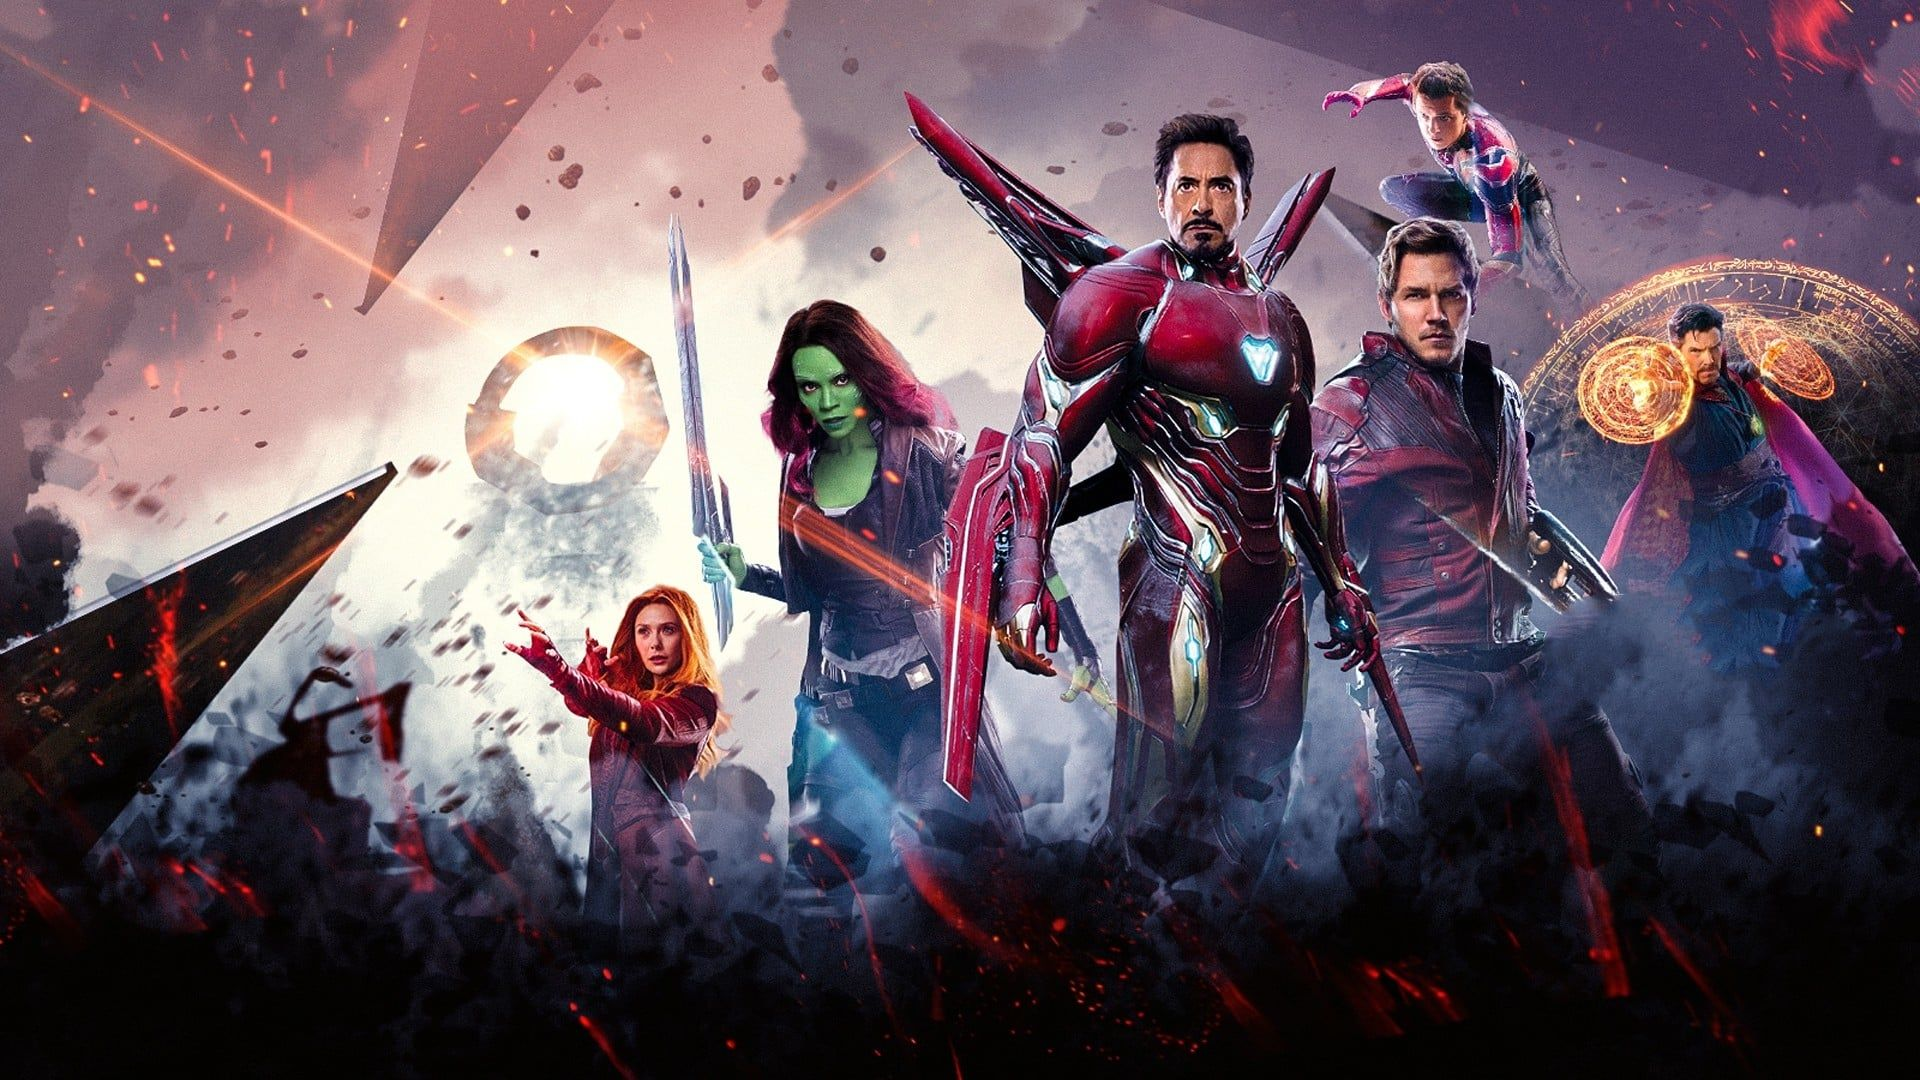 Watch Film Avengers Infinity War Online Free Full Movie Hd Megafilm123 Com Gambar